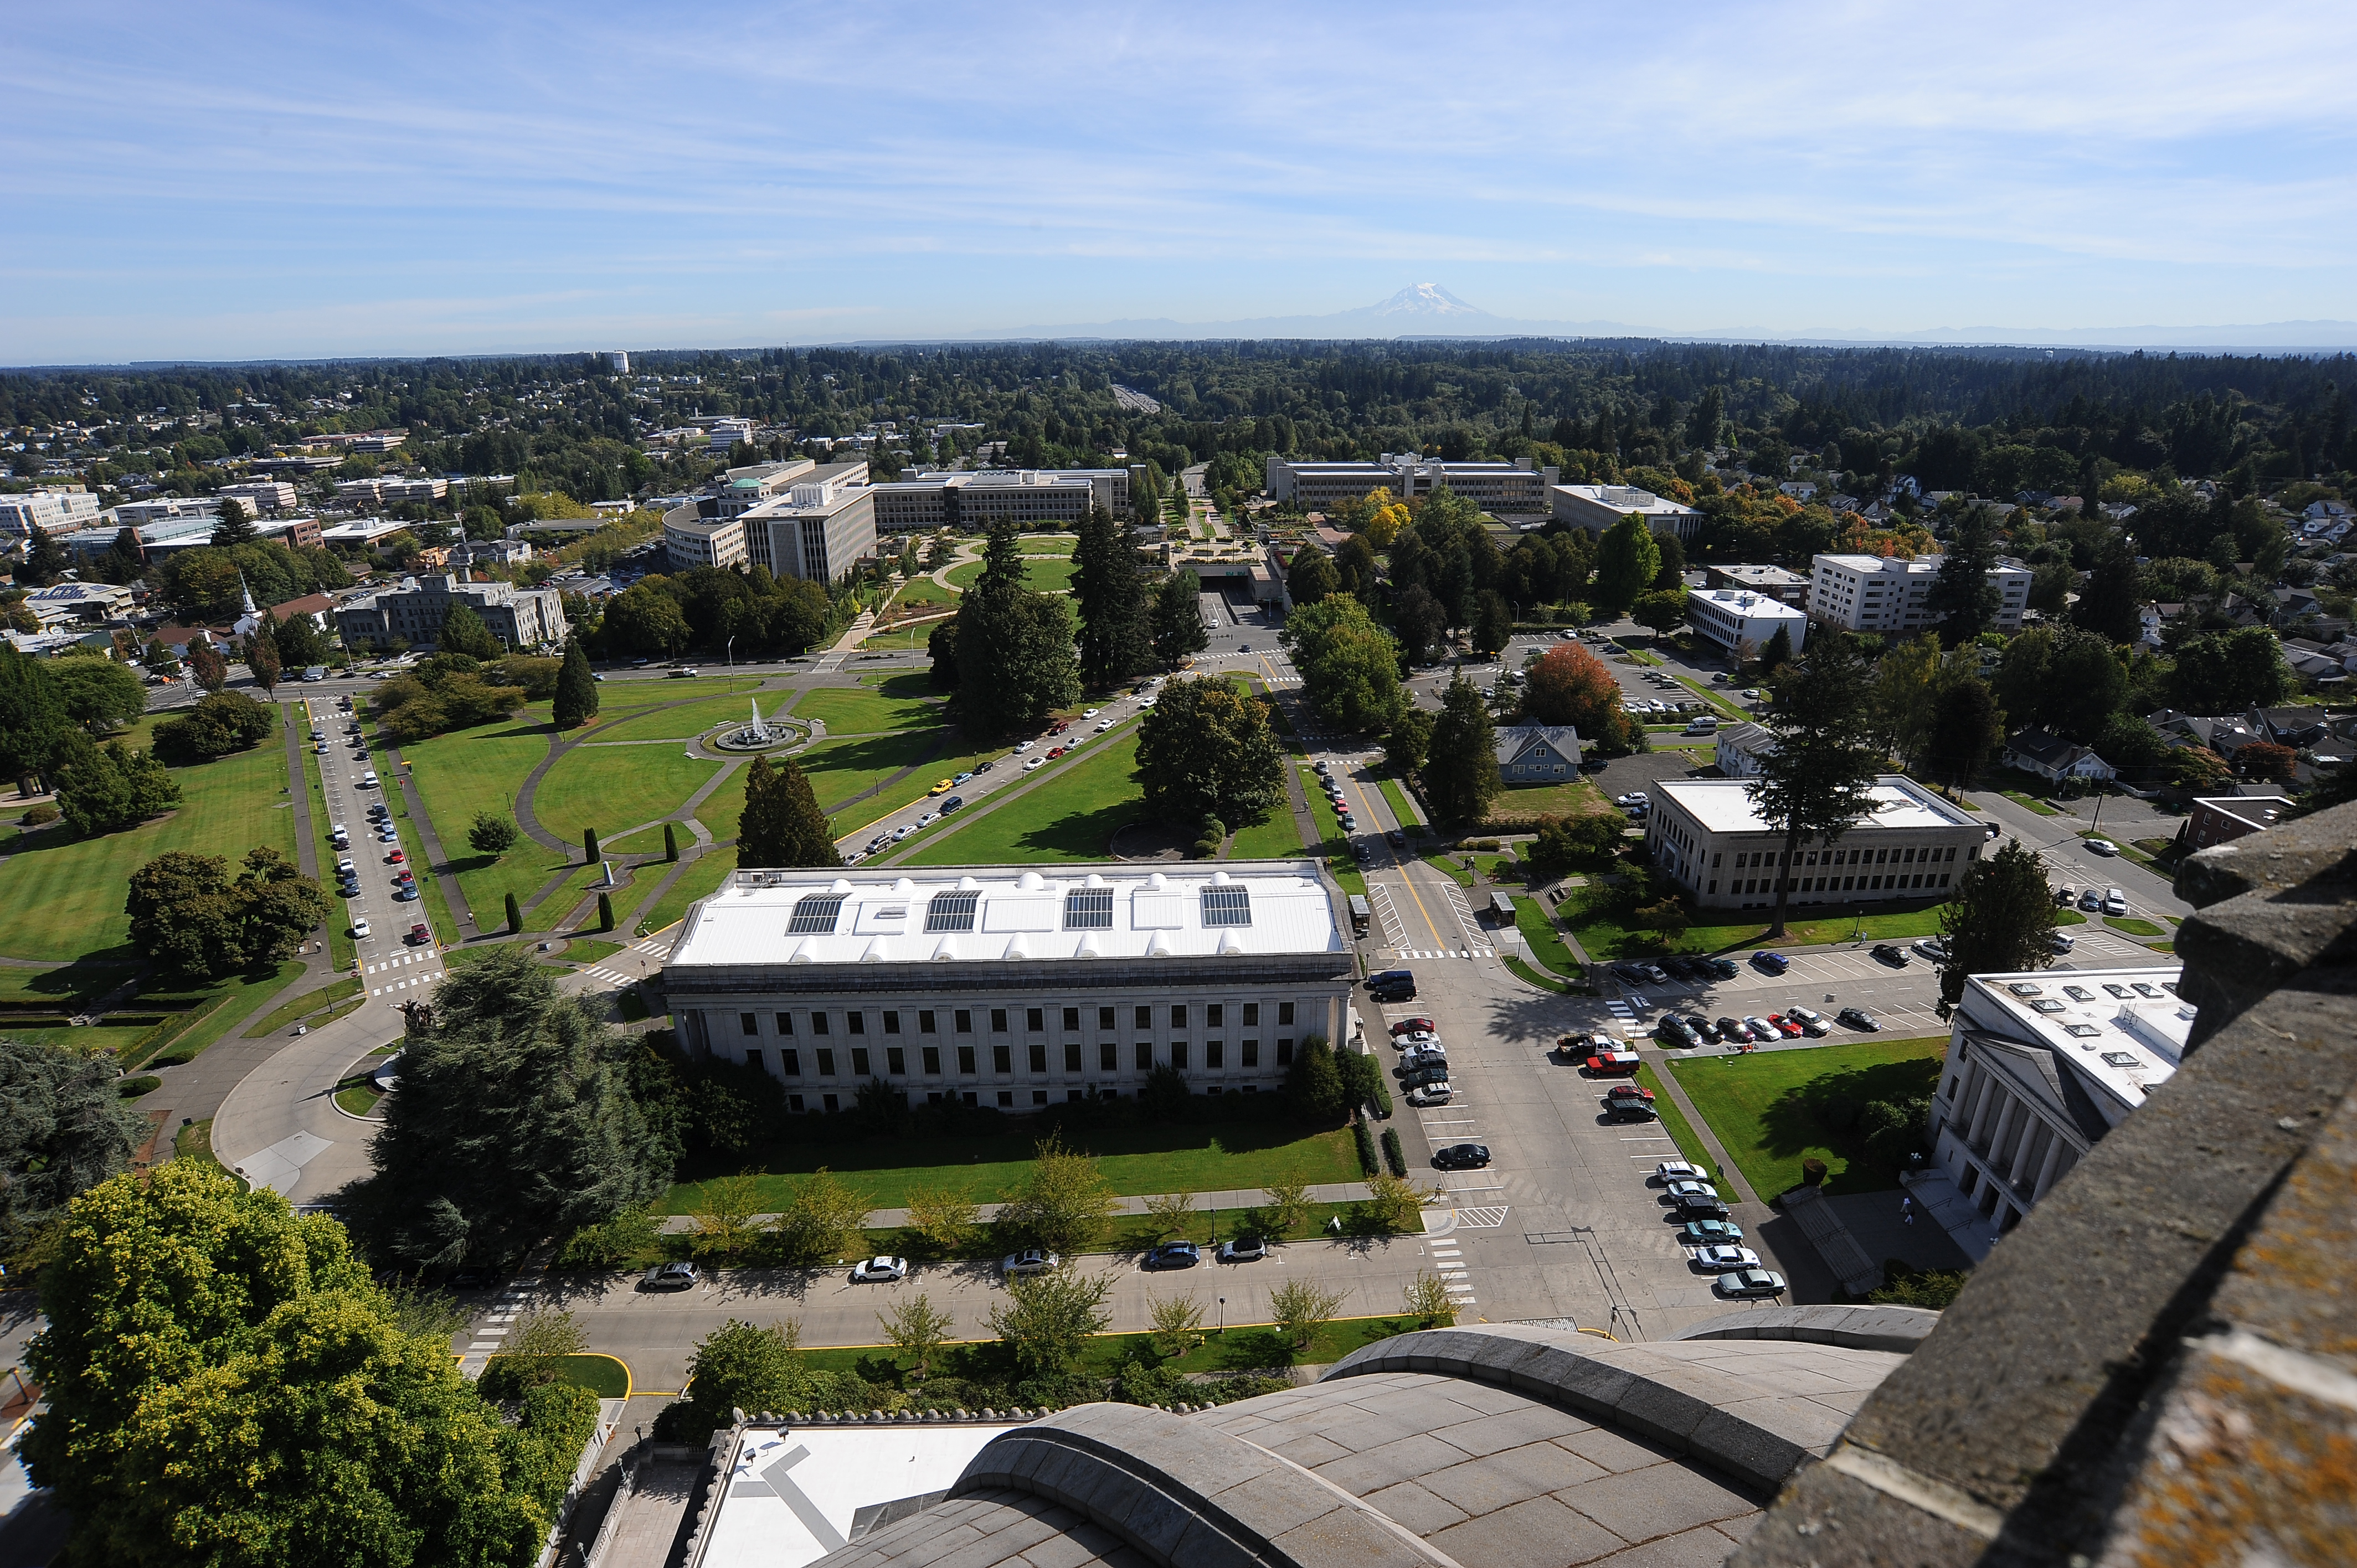 Olympia, WA - State Capitol Grounds and Legislative Building